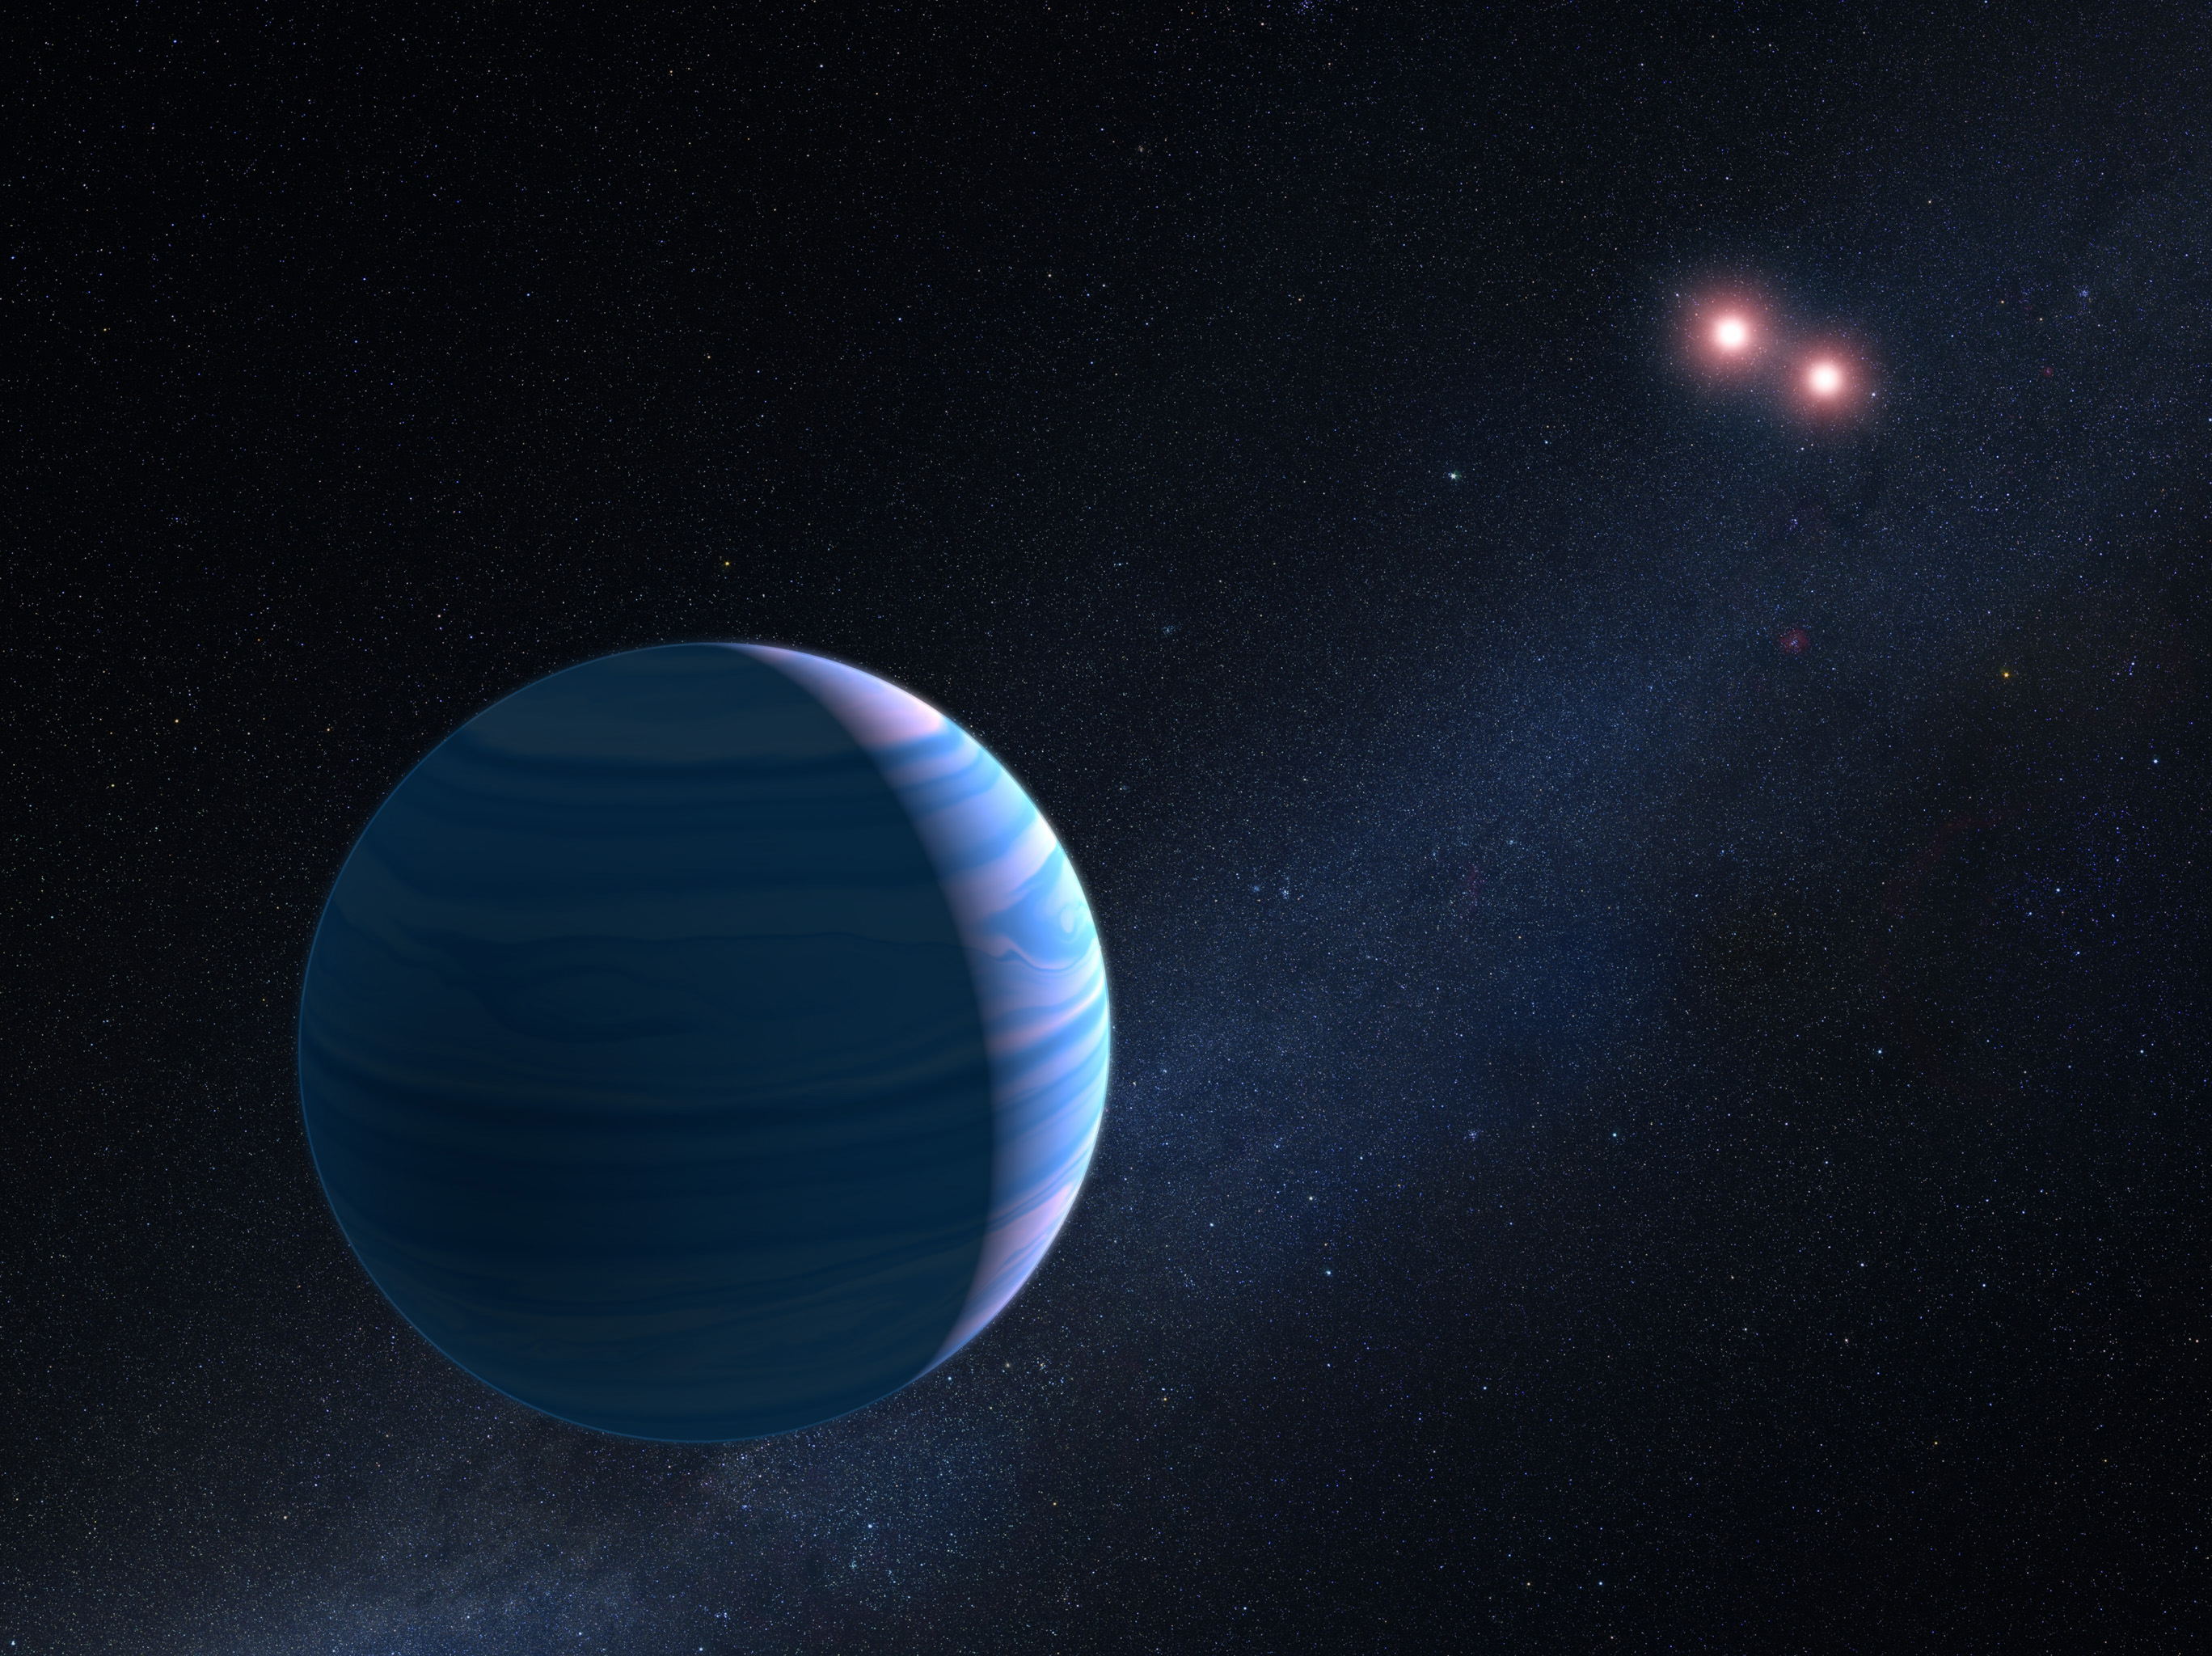 Hubble Finds Planet Orbiting Pair of Stars | NASA